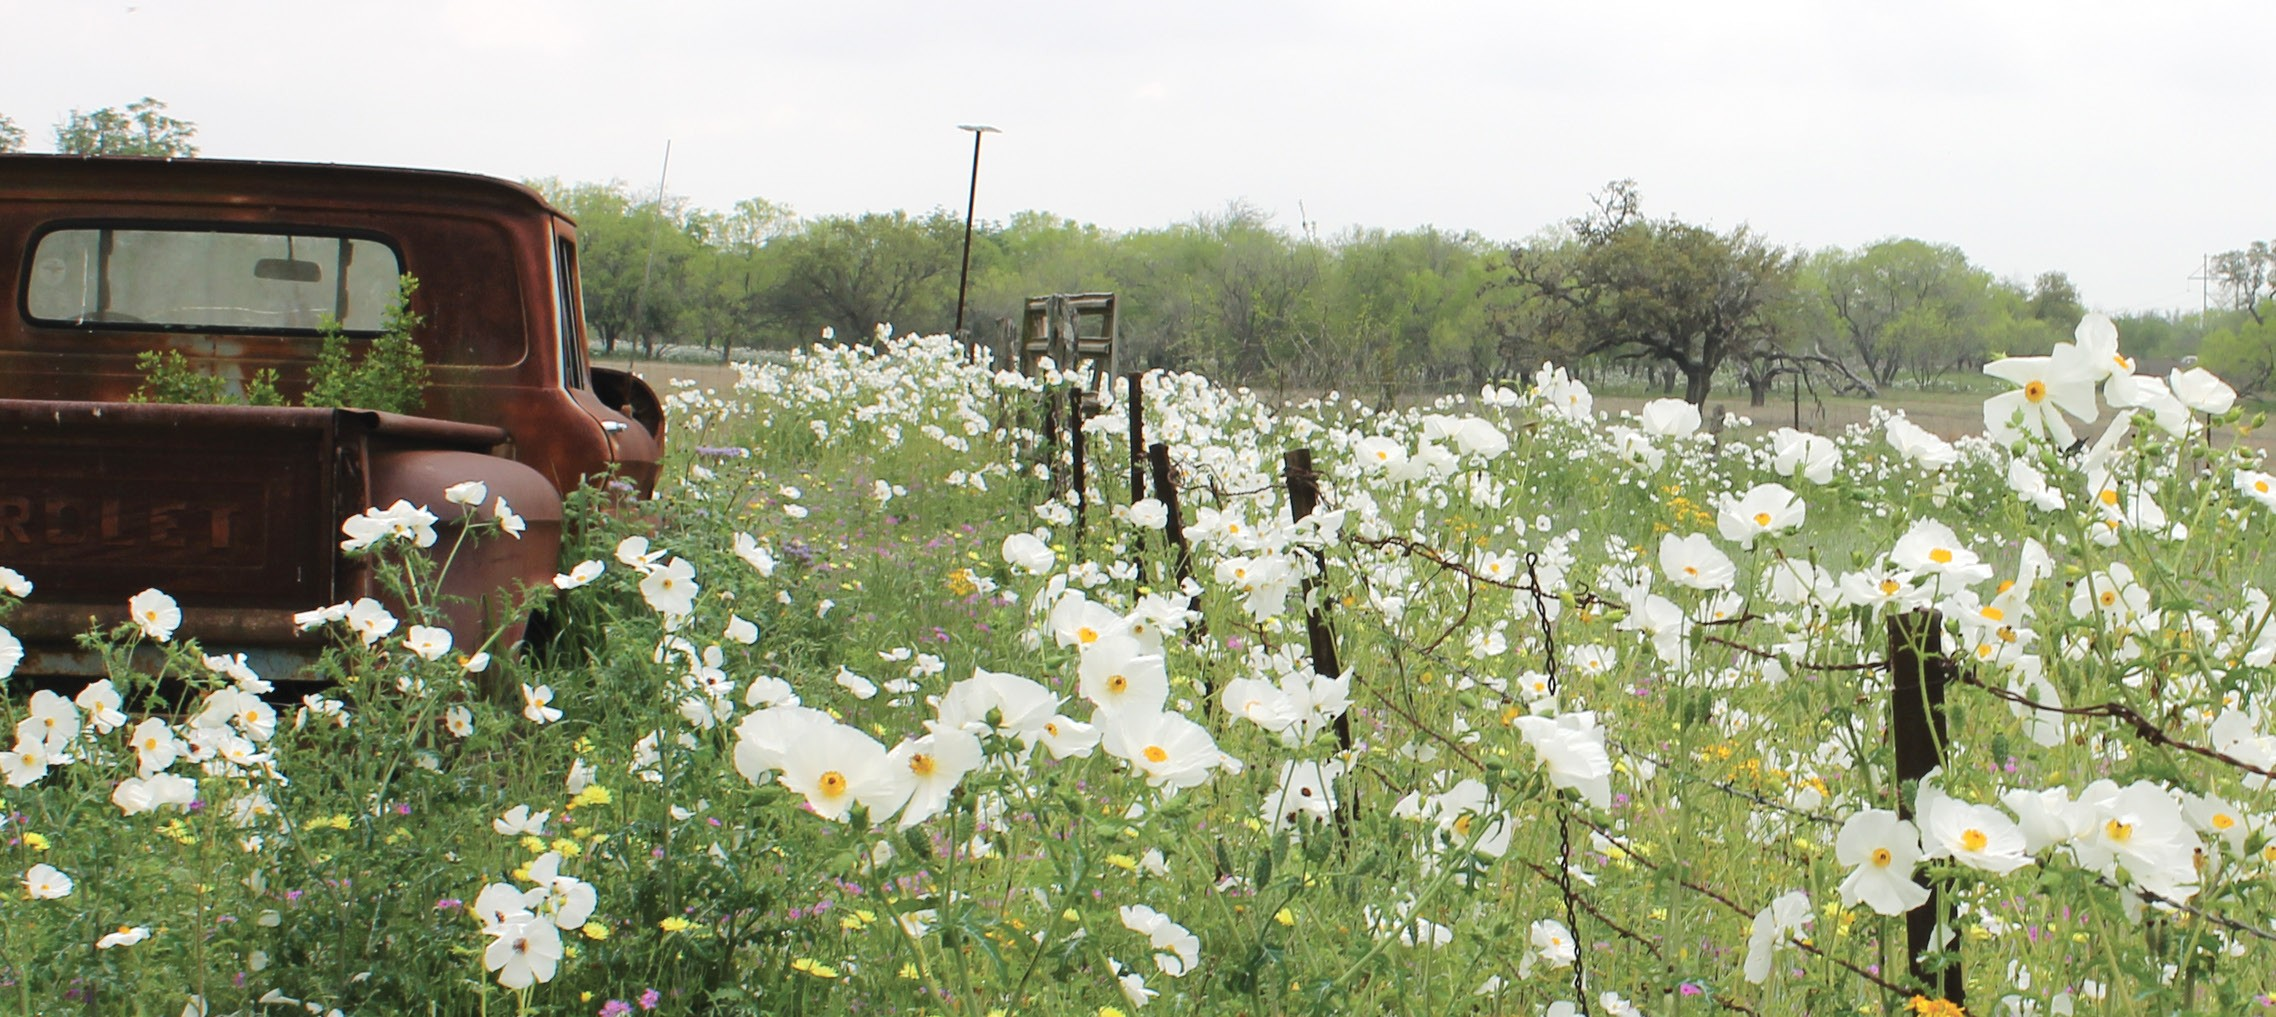 These white prickly poppies help to spruce up the rusty pickup nearby. The flowers are located at the Cardwell place off of Goodwin, west of Oakhaven. Please see more wildflower photos that have been shared by local South Texas readers on page 16C.